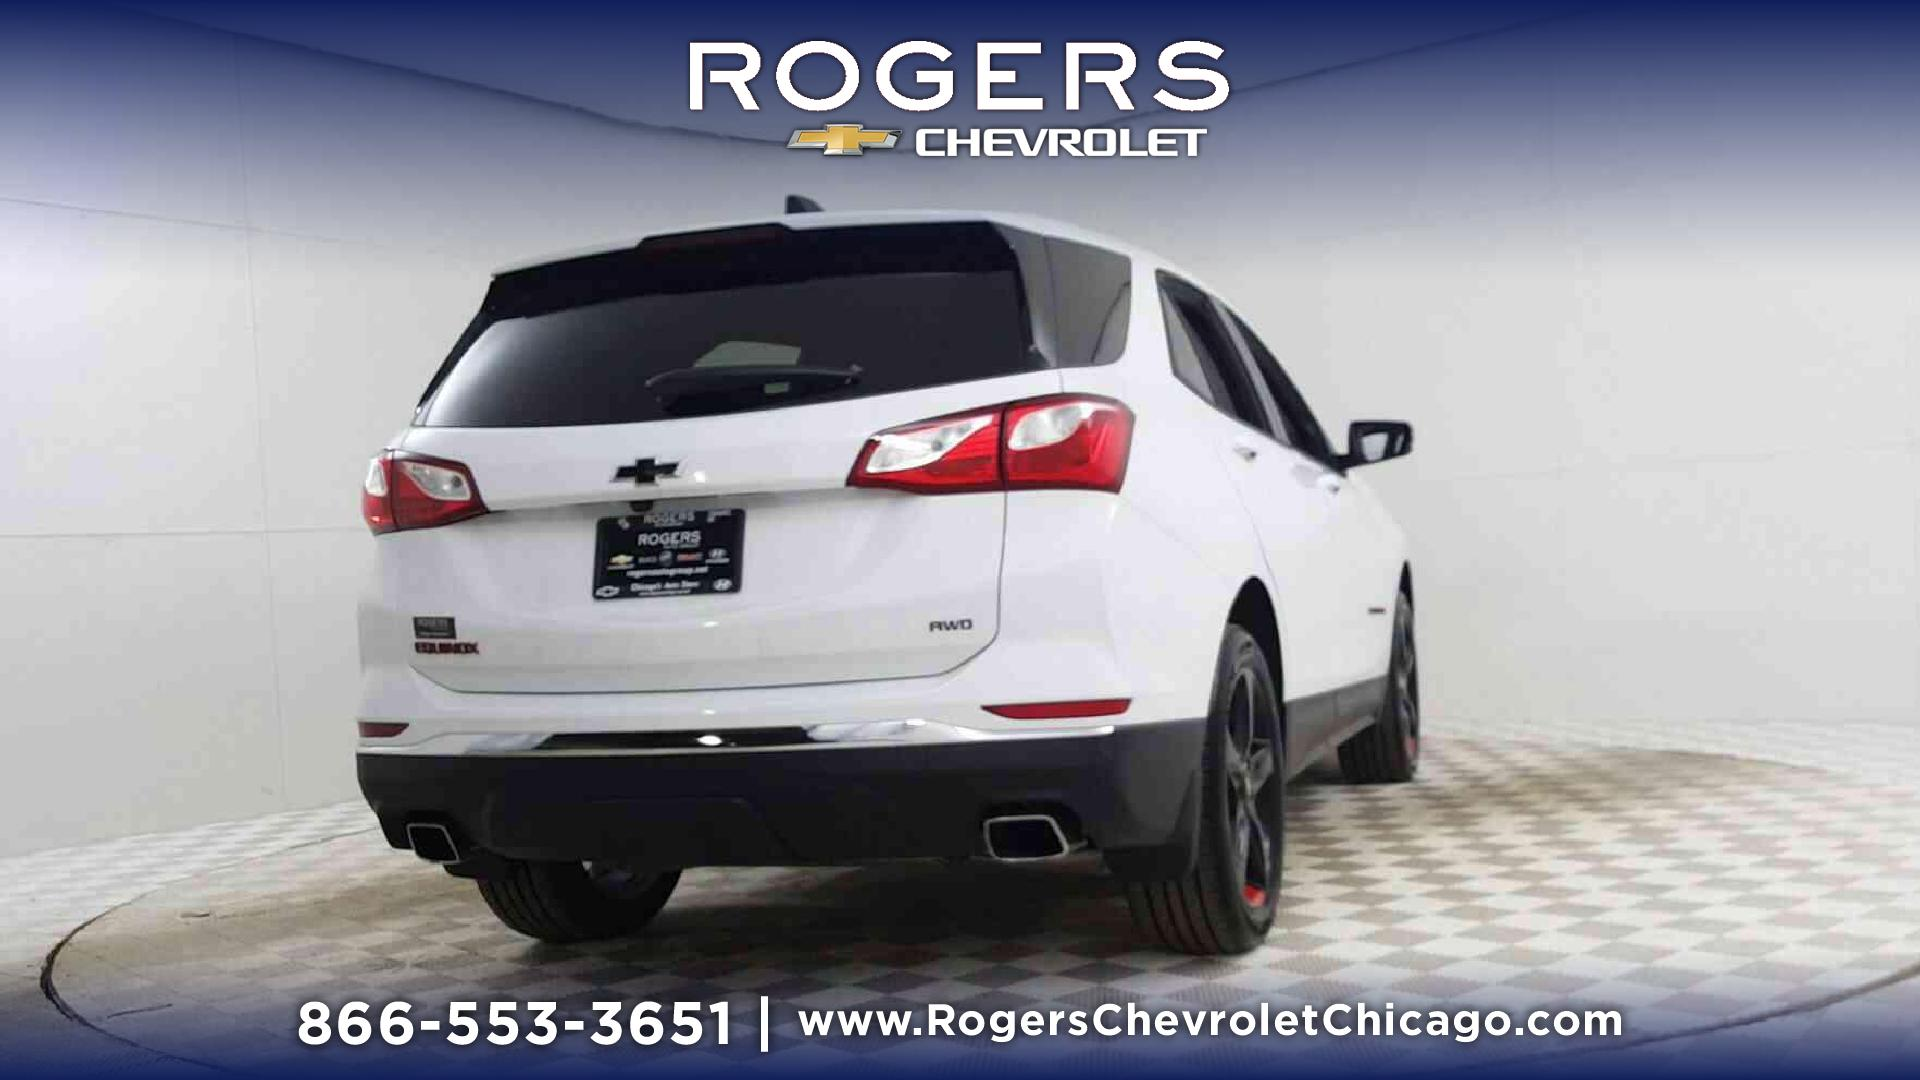 New 2019 Chevrolet Equinox AWD LT in Summit White For Sale in Chicago, IL |  Rogers Chevrolet